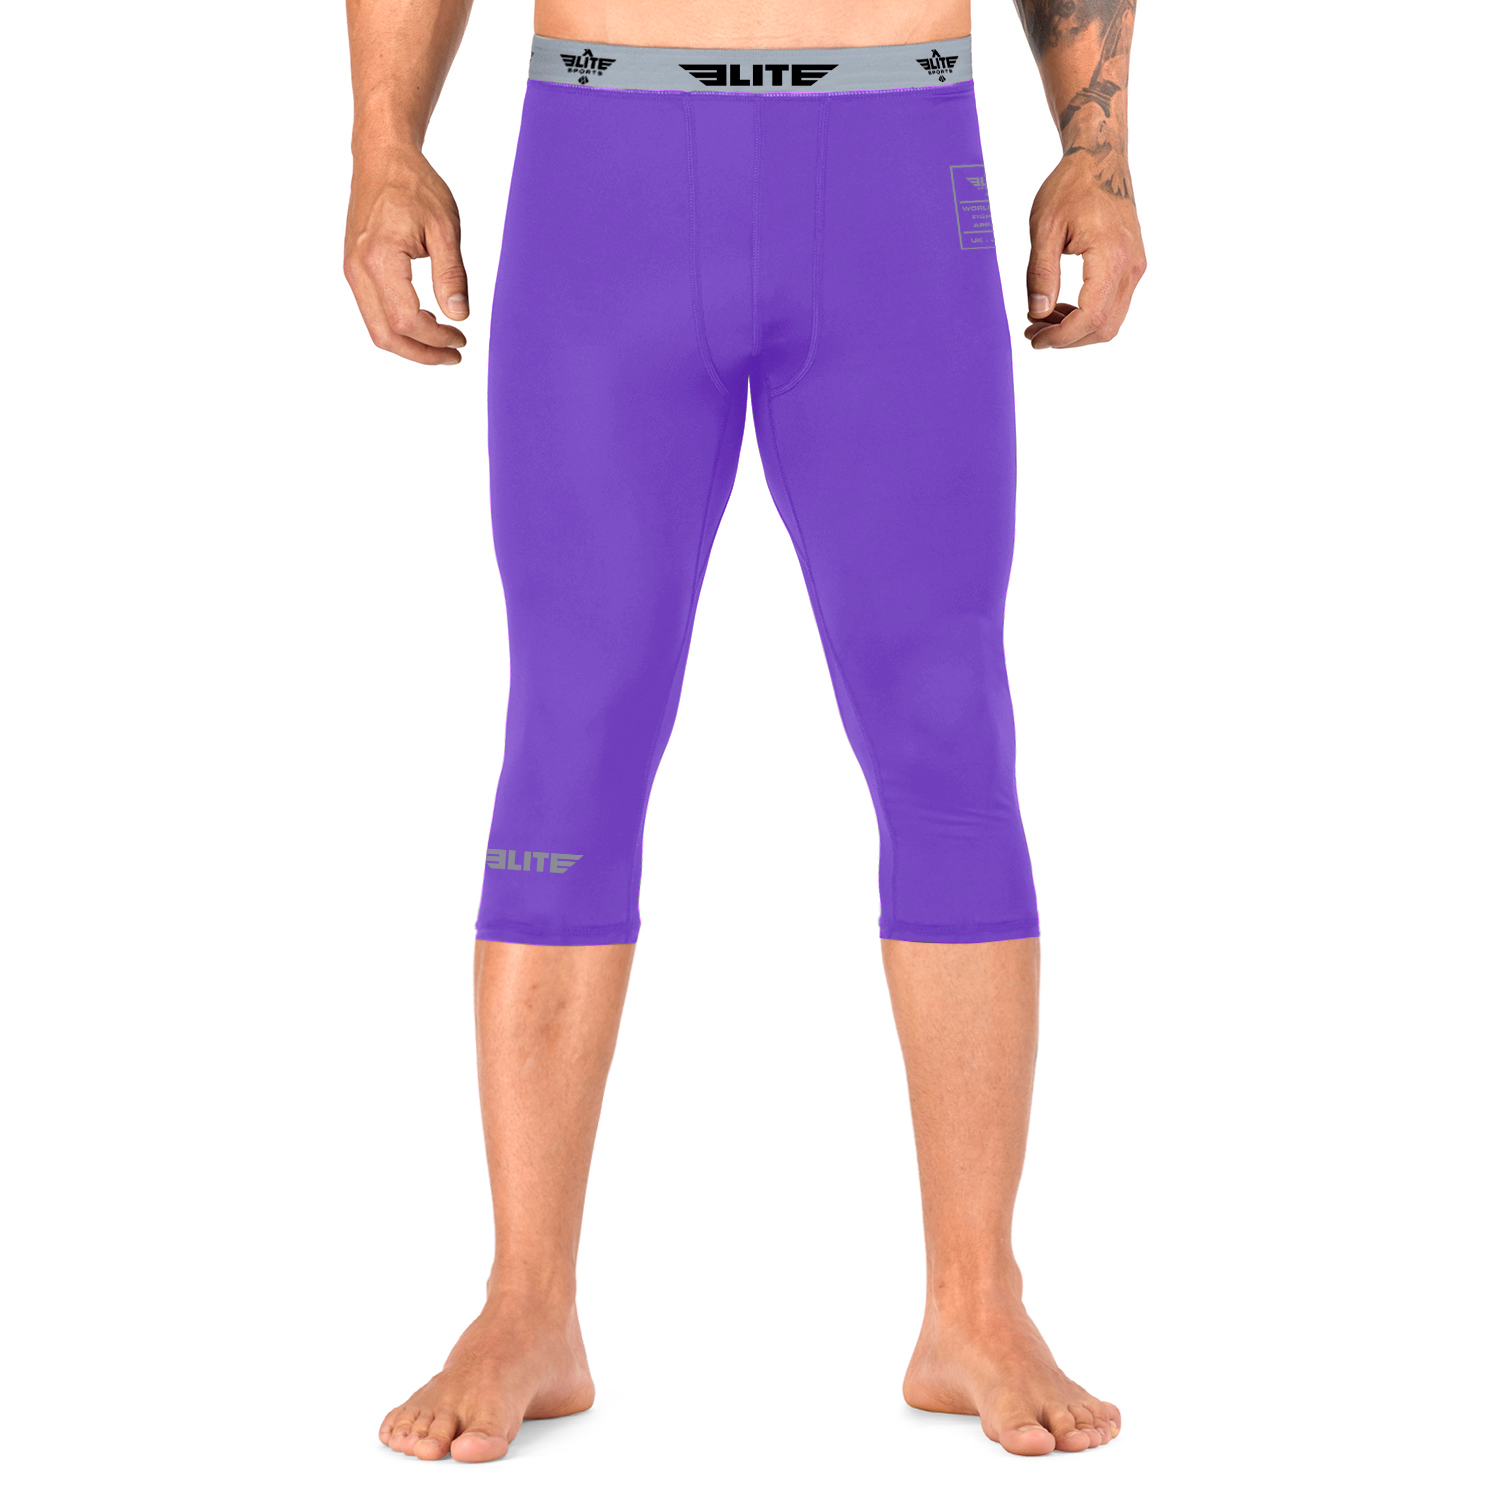 Elite Sports Three Quarter Purple Compression MMA Spat Pants